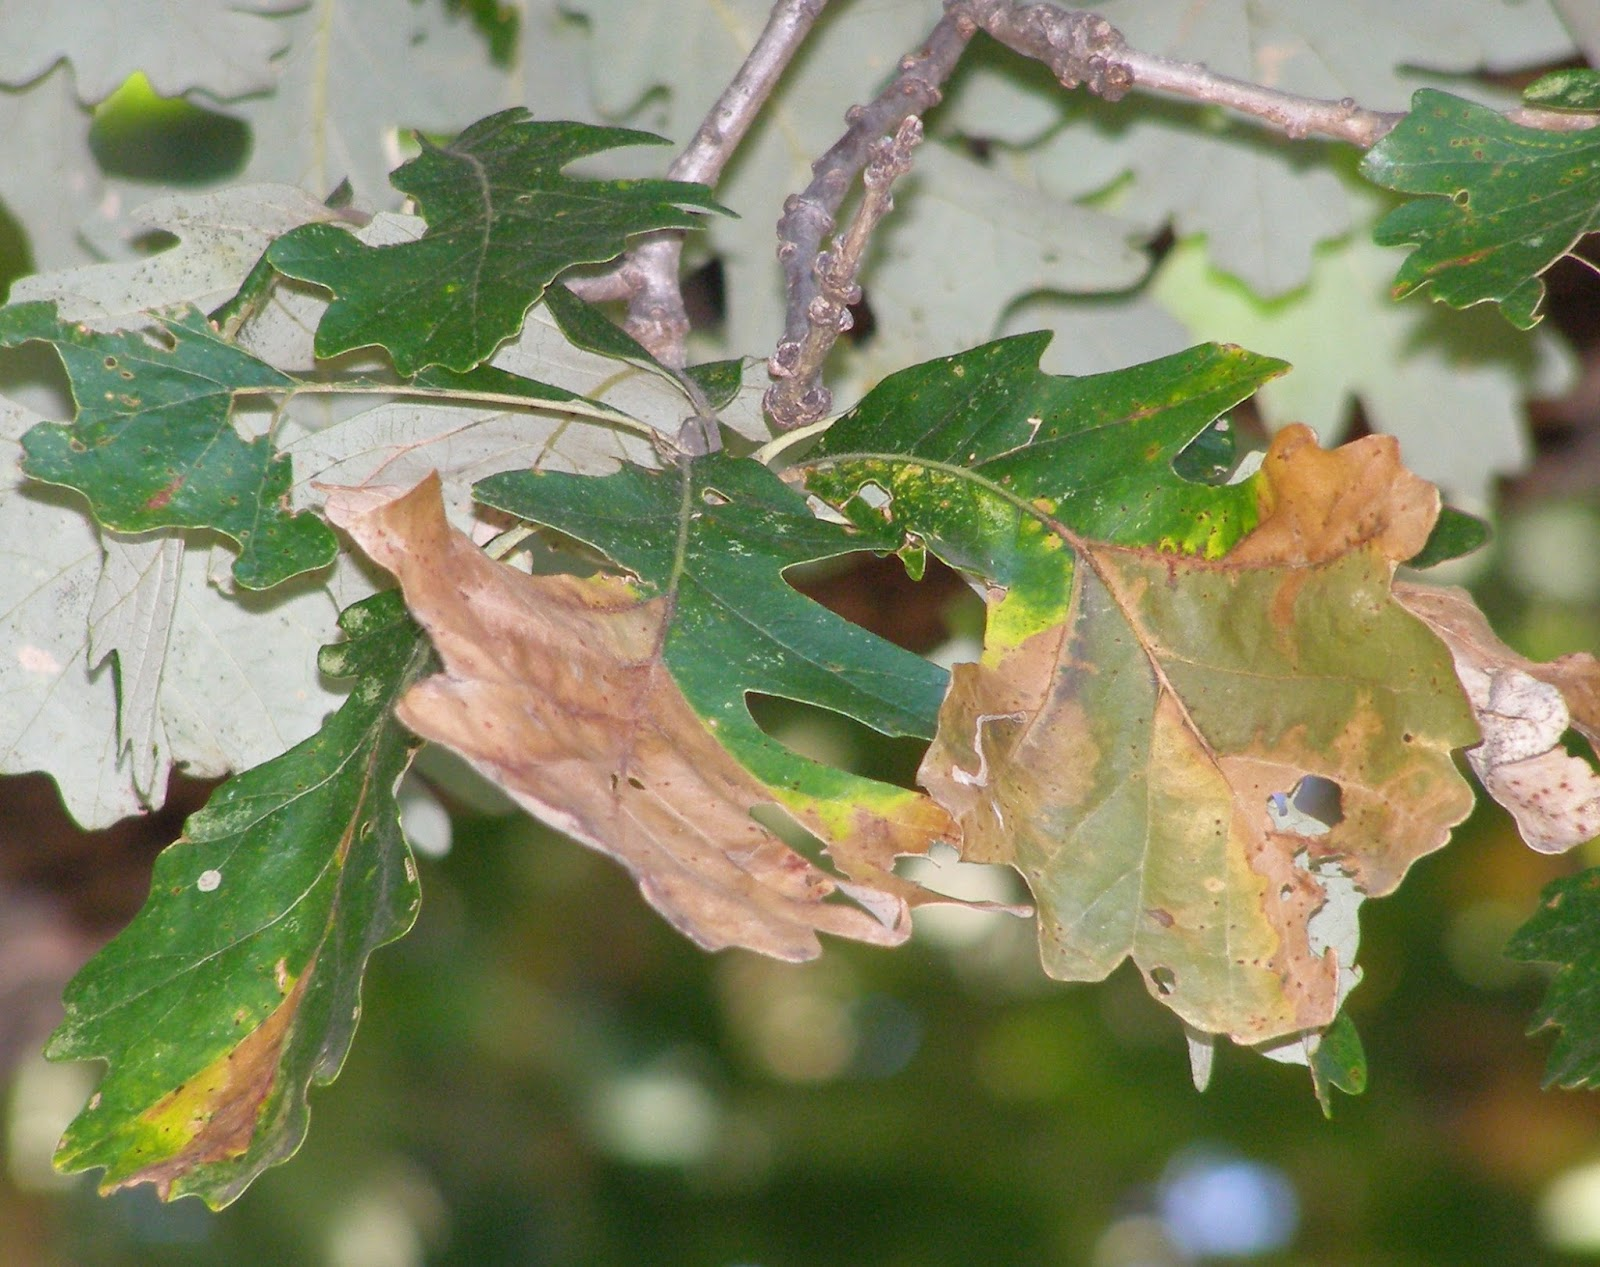 leaves with bur oak blight